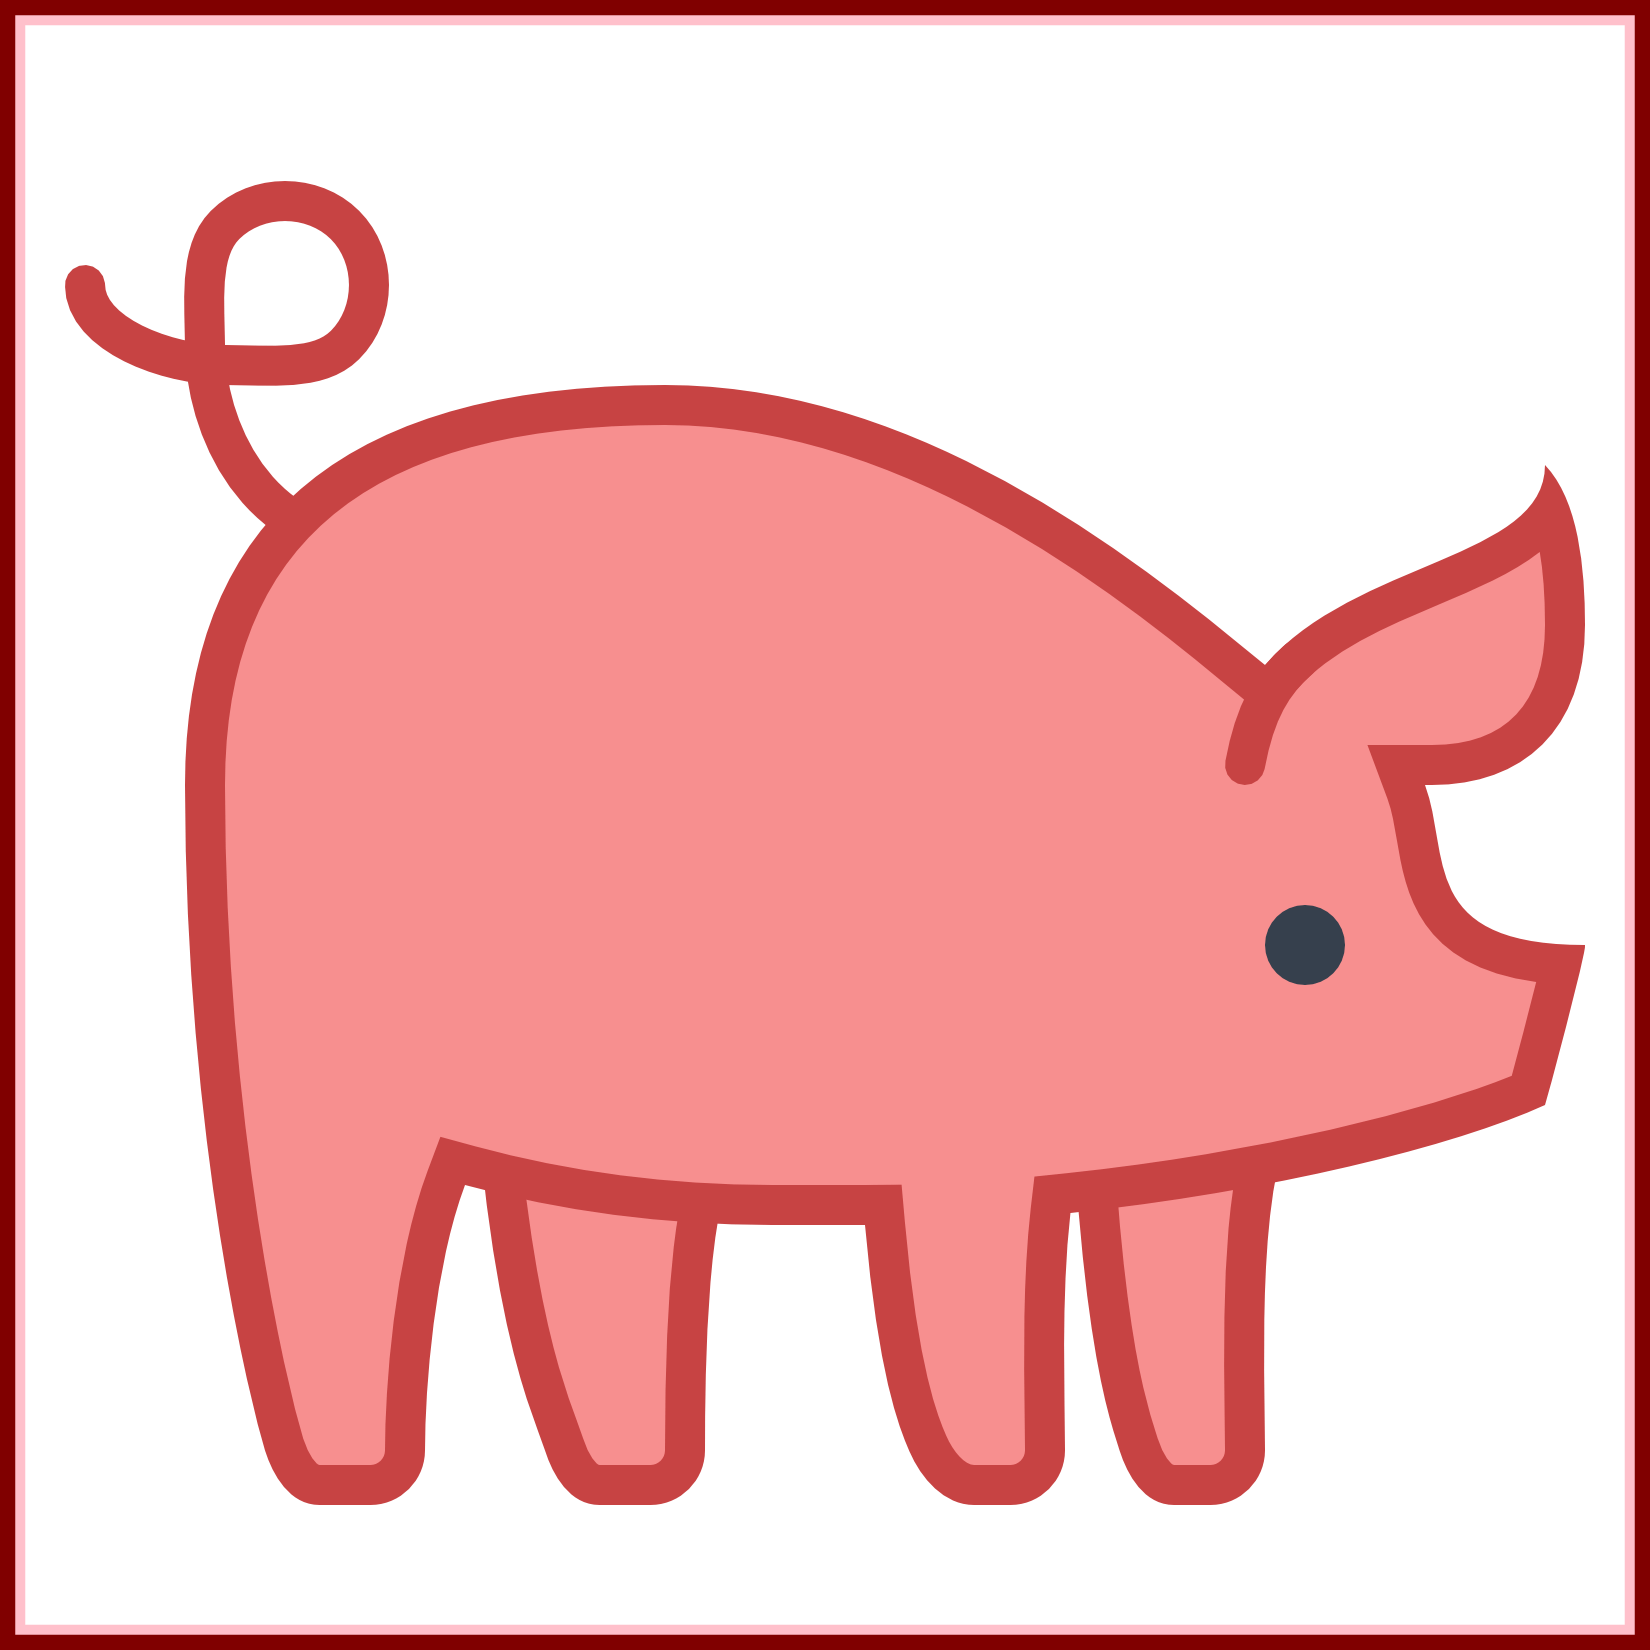 Goat clipart boar. Wire pig outline center